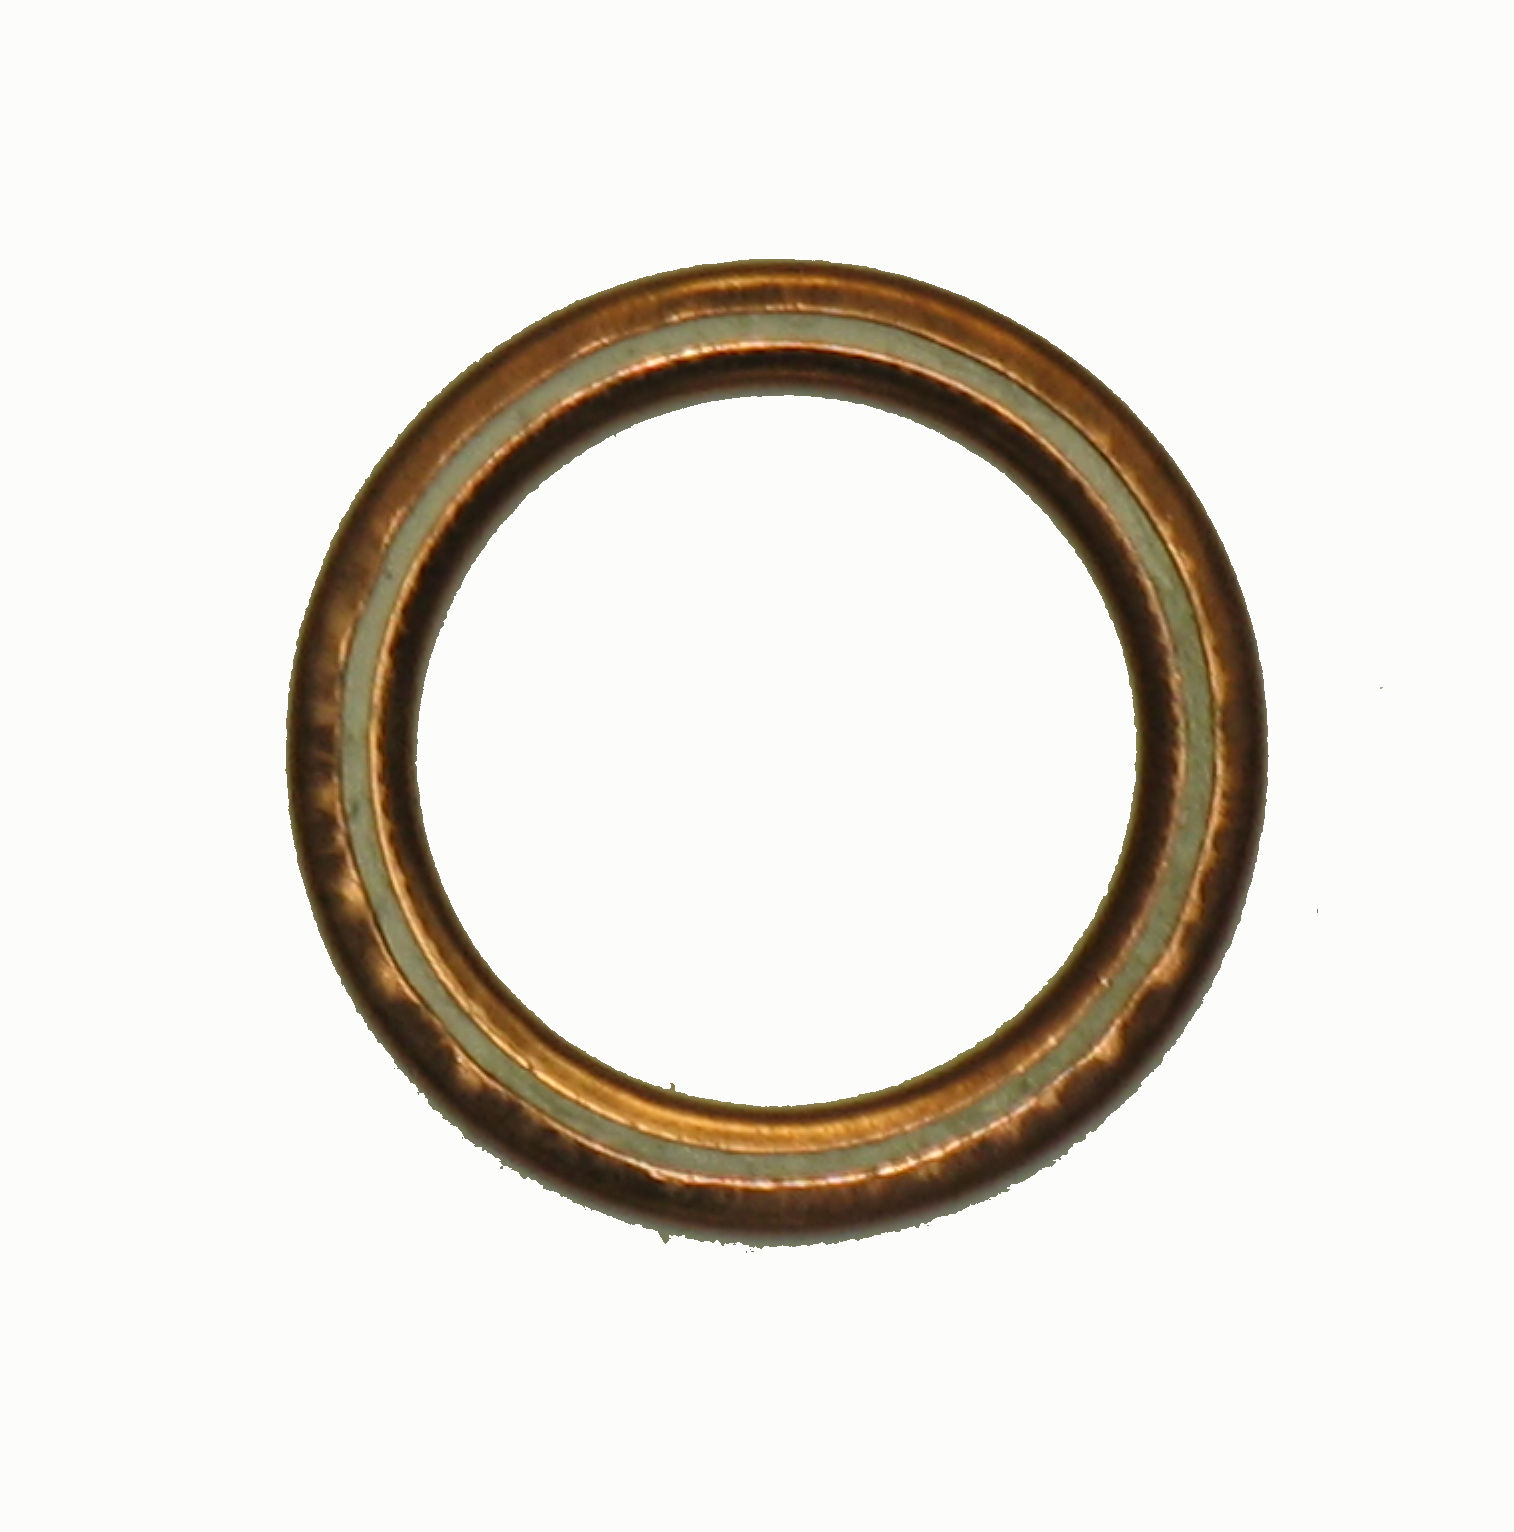 WAS-6319 Gasket: Copper R/N GKT-29, GKT-00029